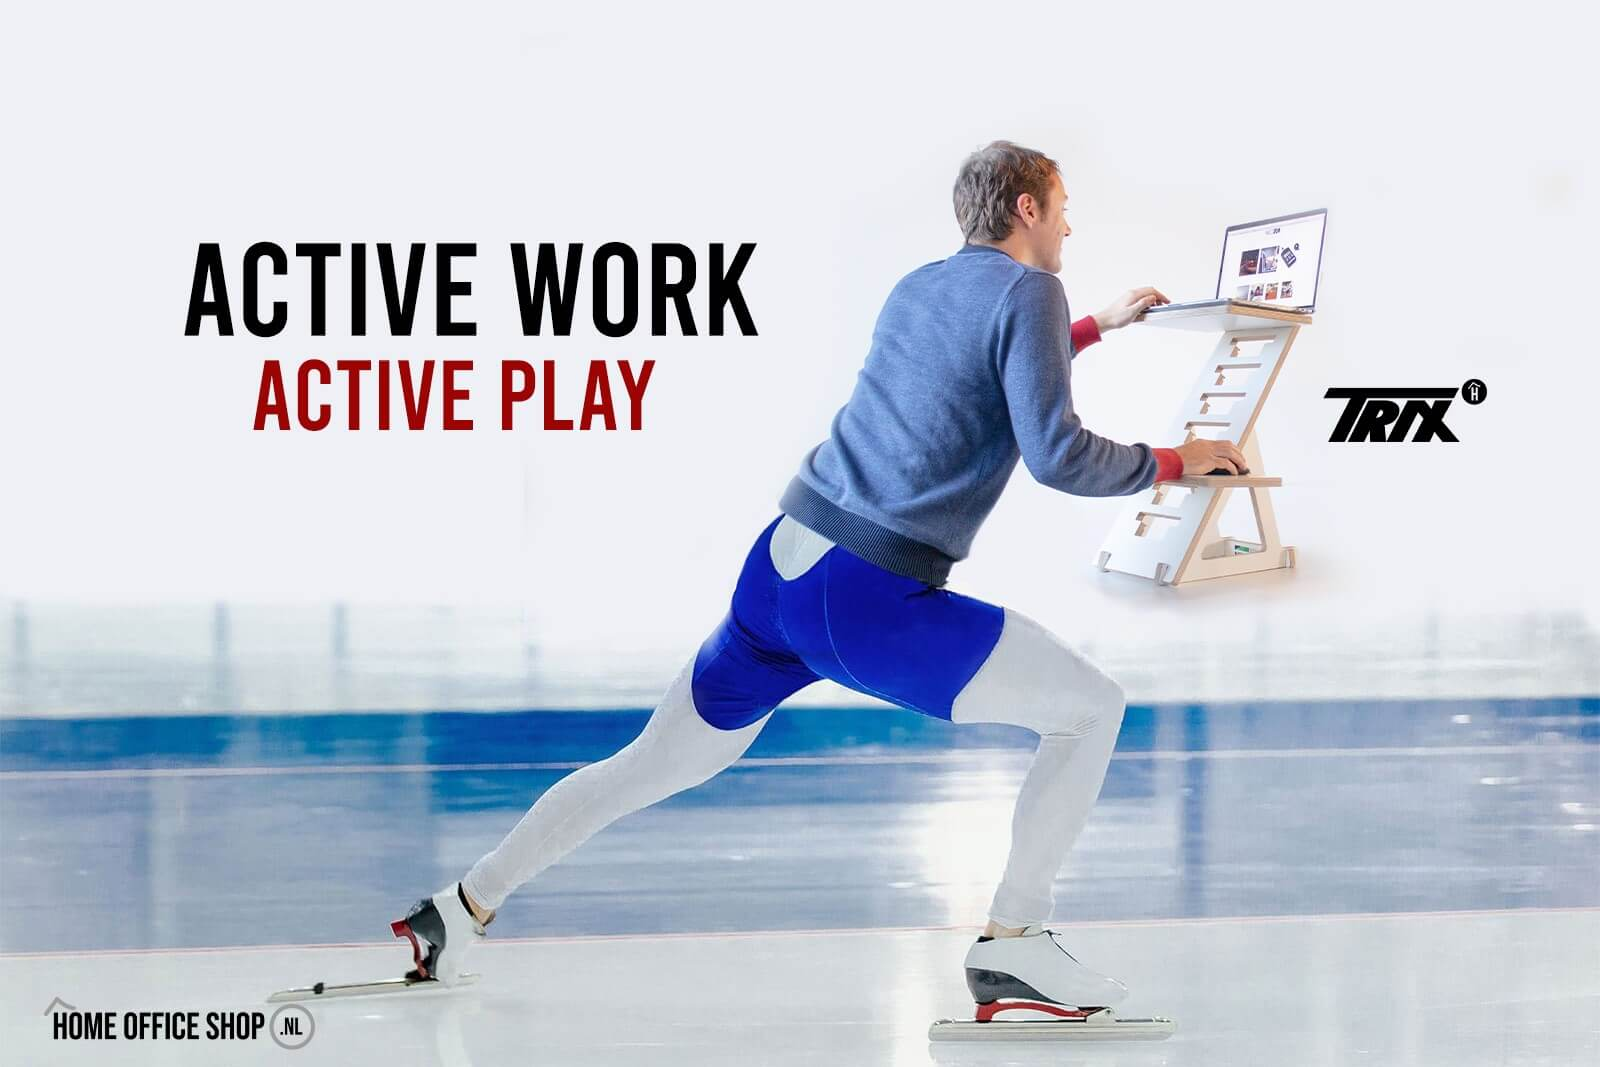 active work, active play today